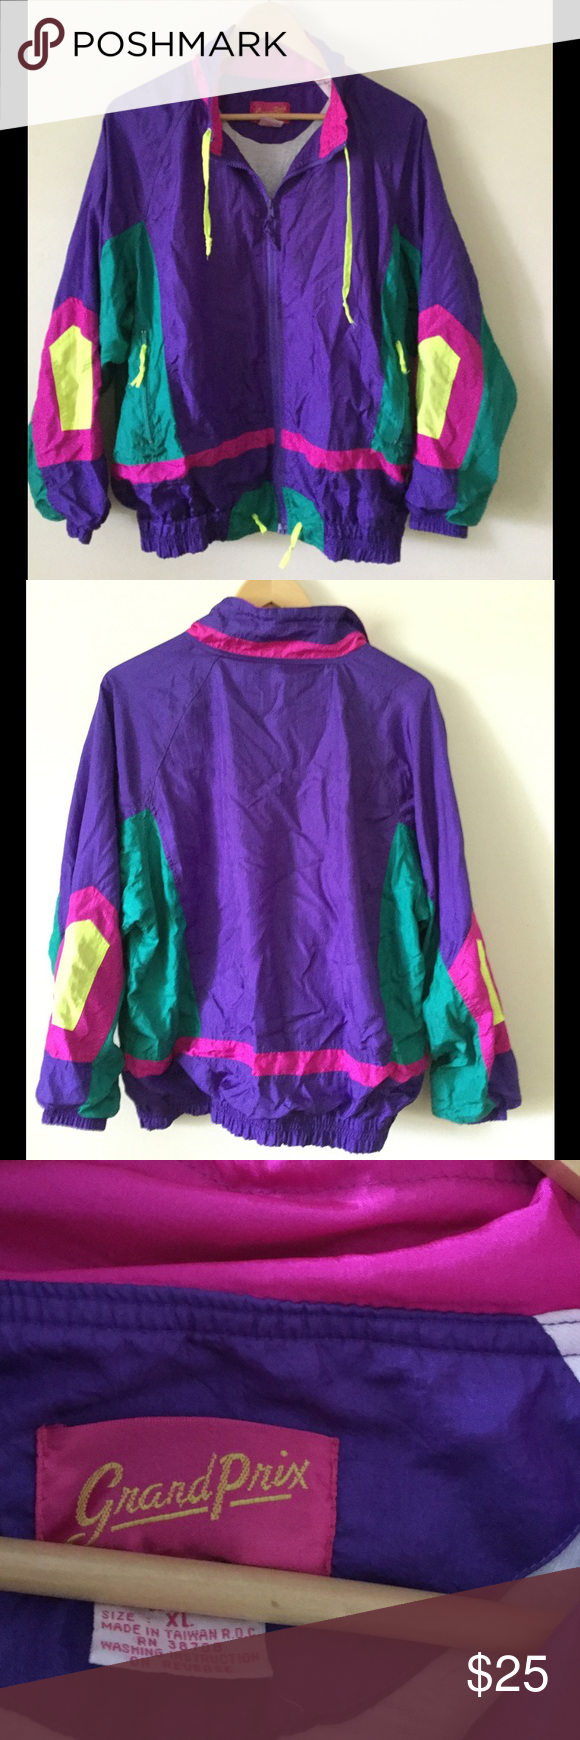 """Vintage windbreaker Super sweet colorful vintage windbreaker. Lightweight, retro and comfortable. This can roll up into a bag or suitcase so easily. Brand is """"Grand Prix"""" and tag says XL but since it's vintage sizing, I think this would best fit a size small or medium. I also have the matching pants, if interested, please ask. Vintage Jackets & Coats"""